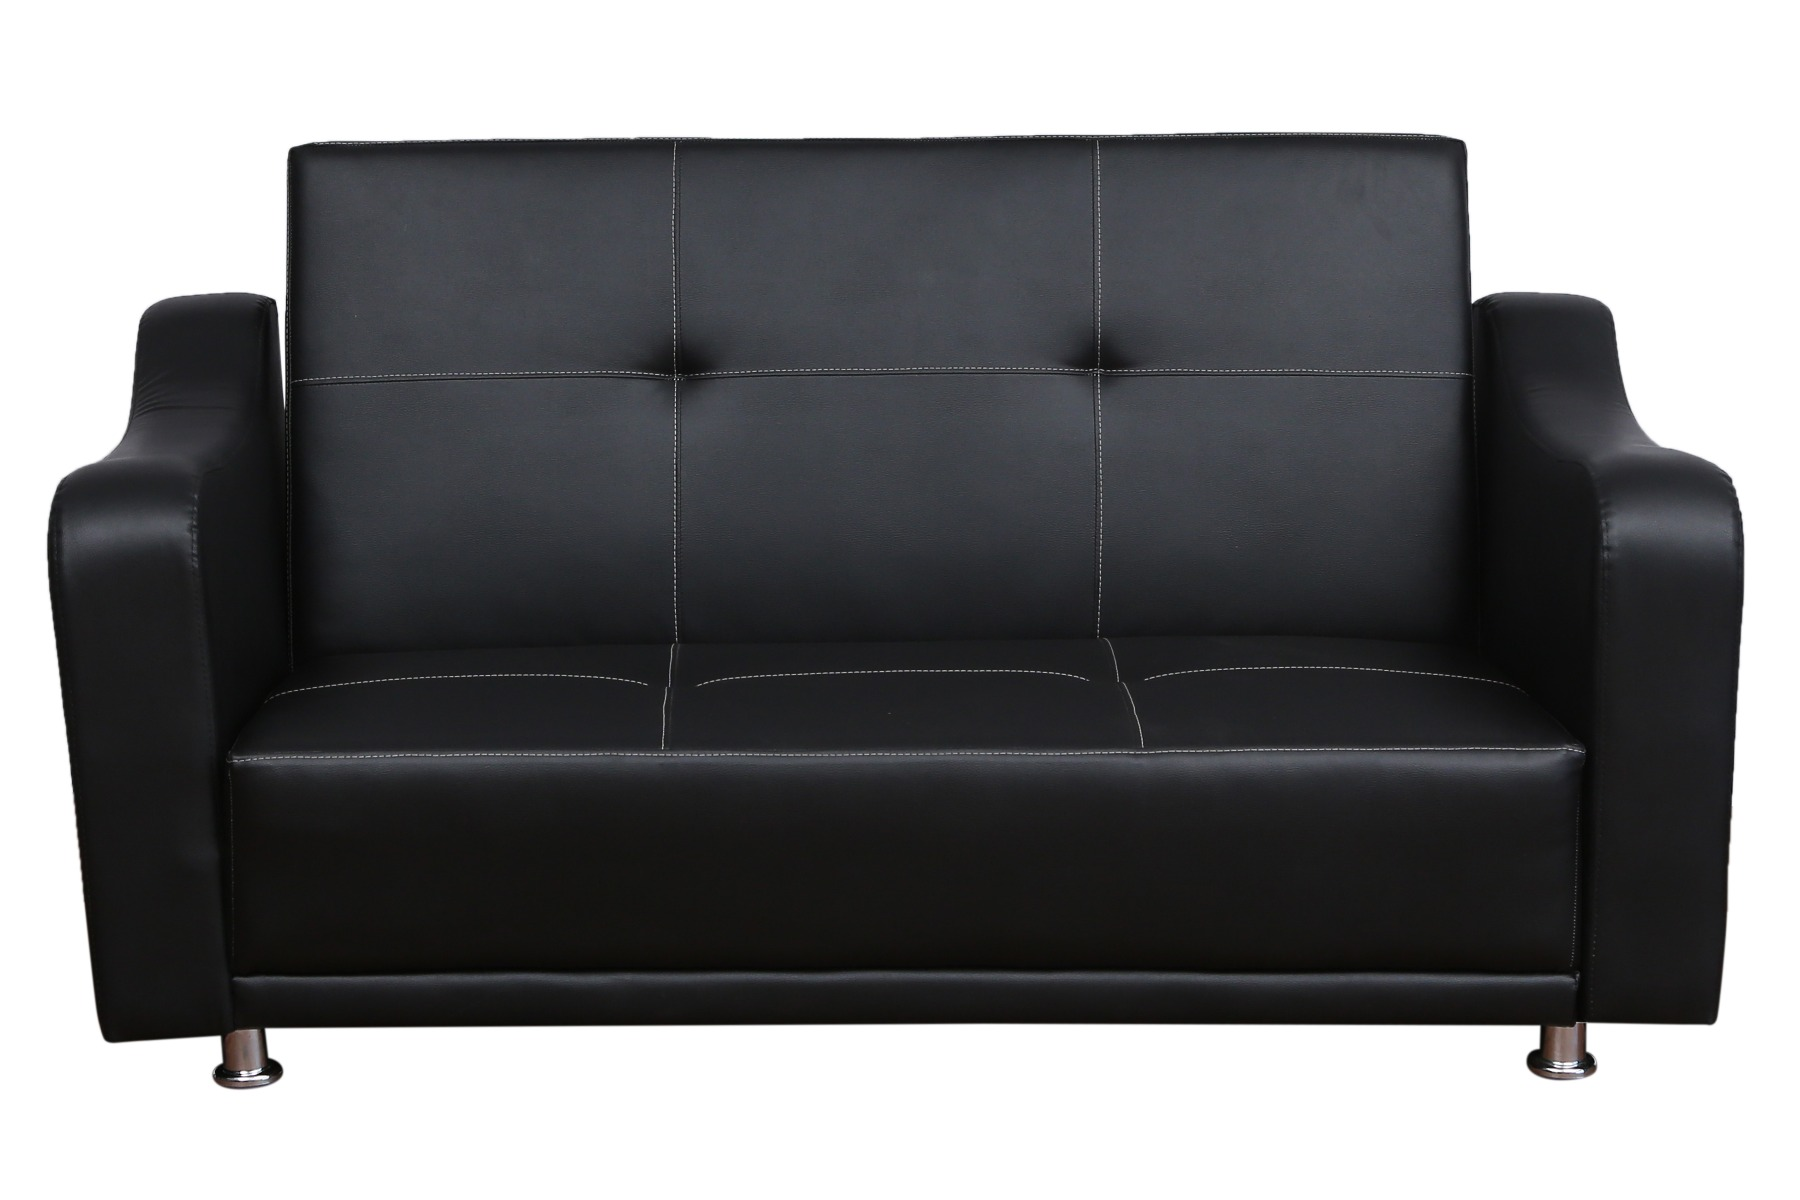 DATSUN 2 SEATER SOFA CUM BED IN LEATHERITE COLOR BLACK